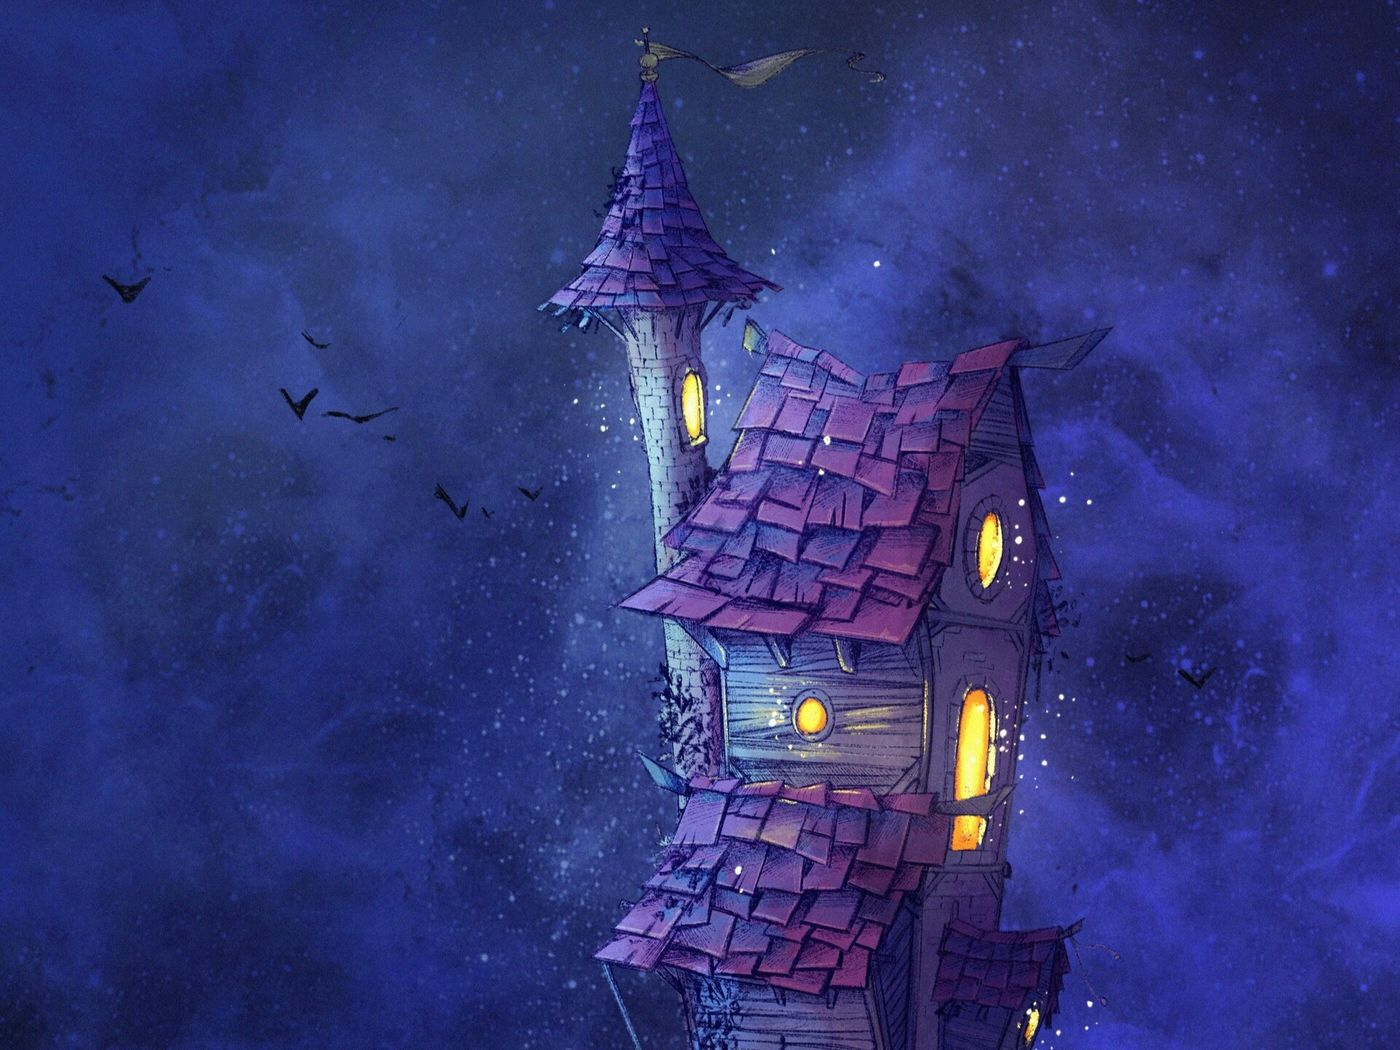 THE WITCH'S HOUSES